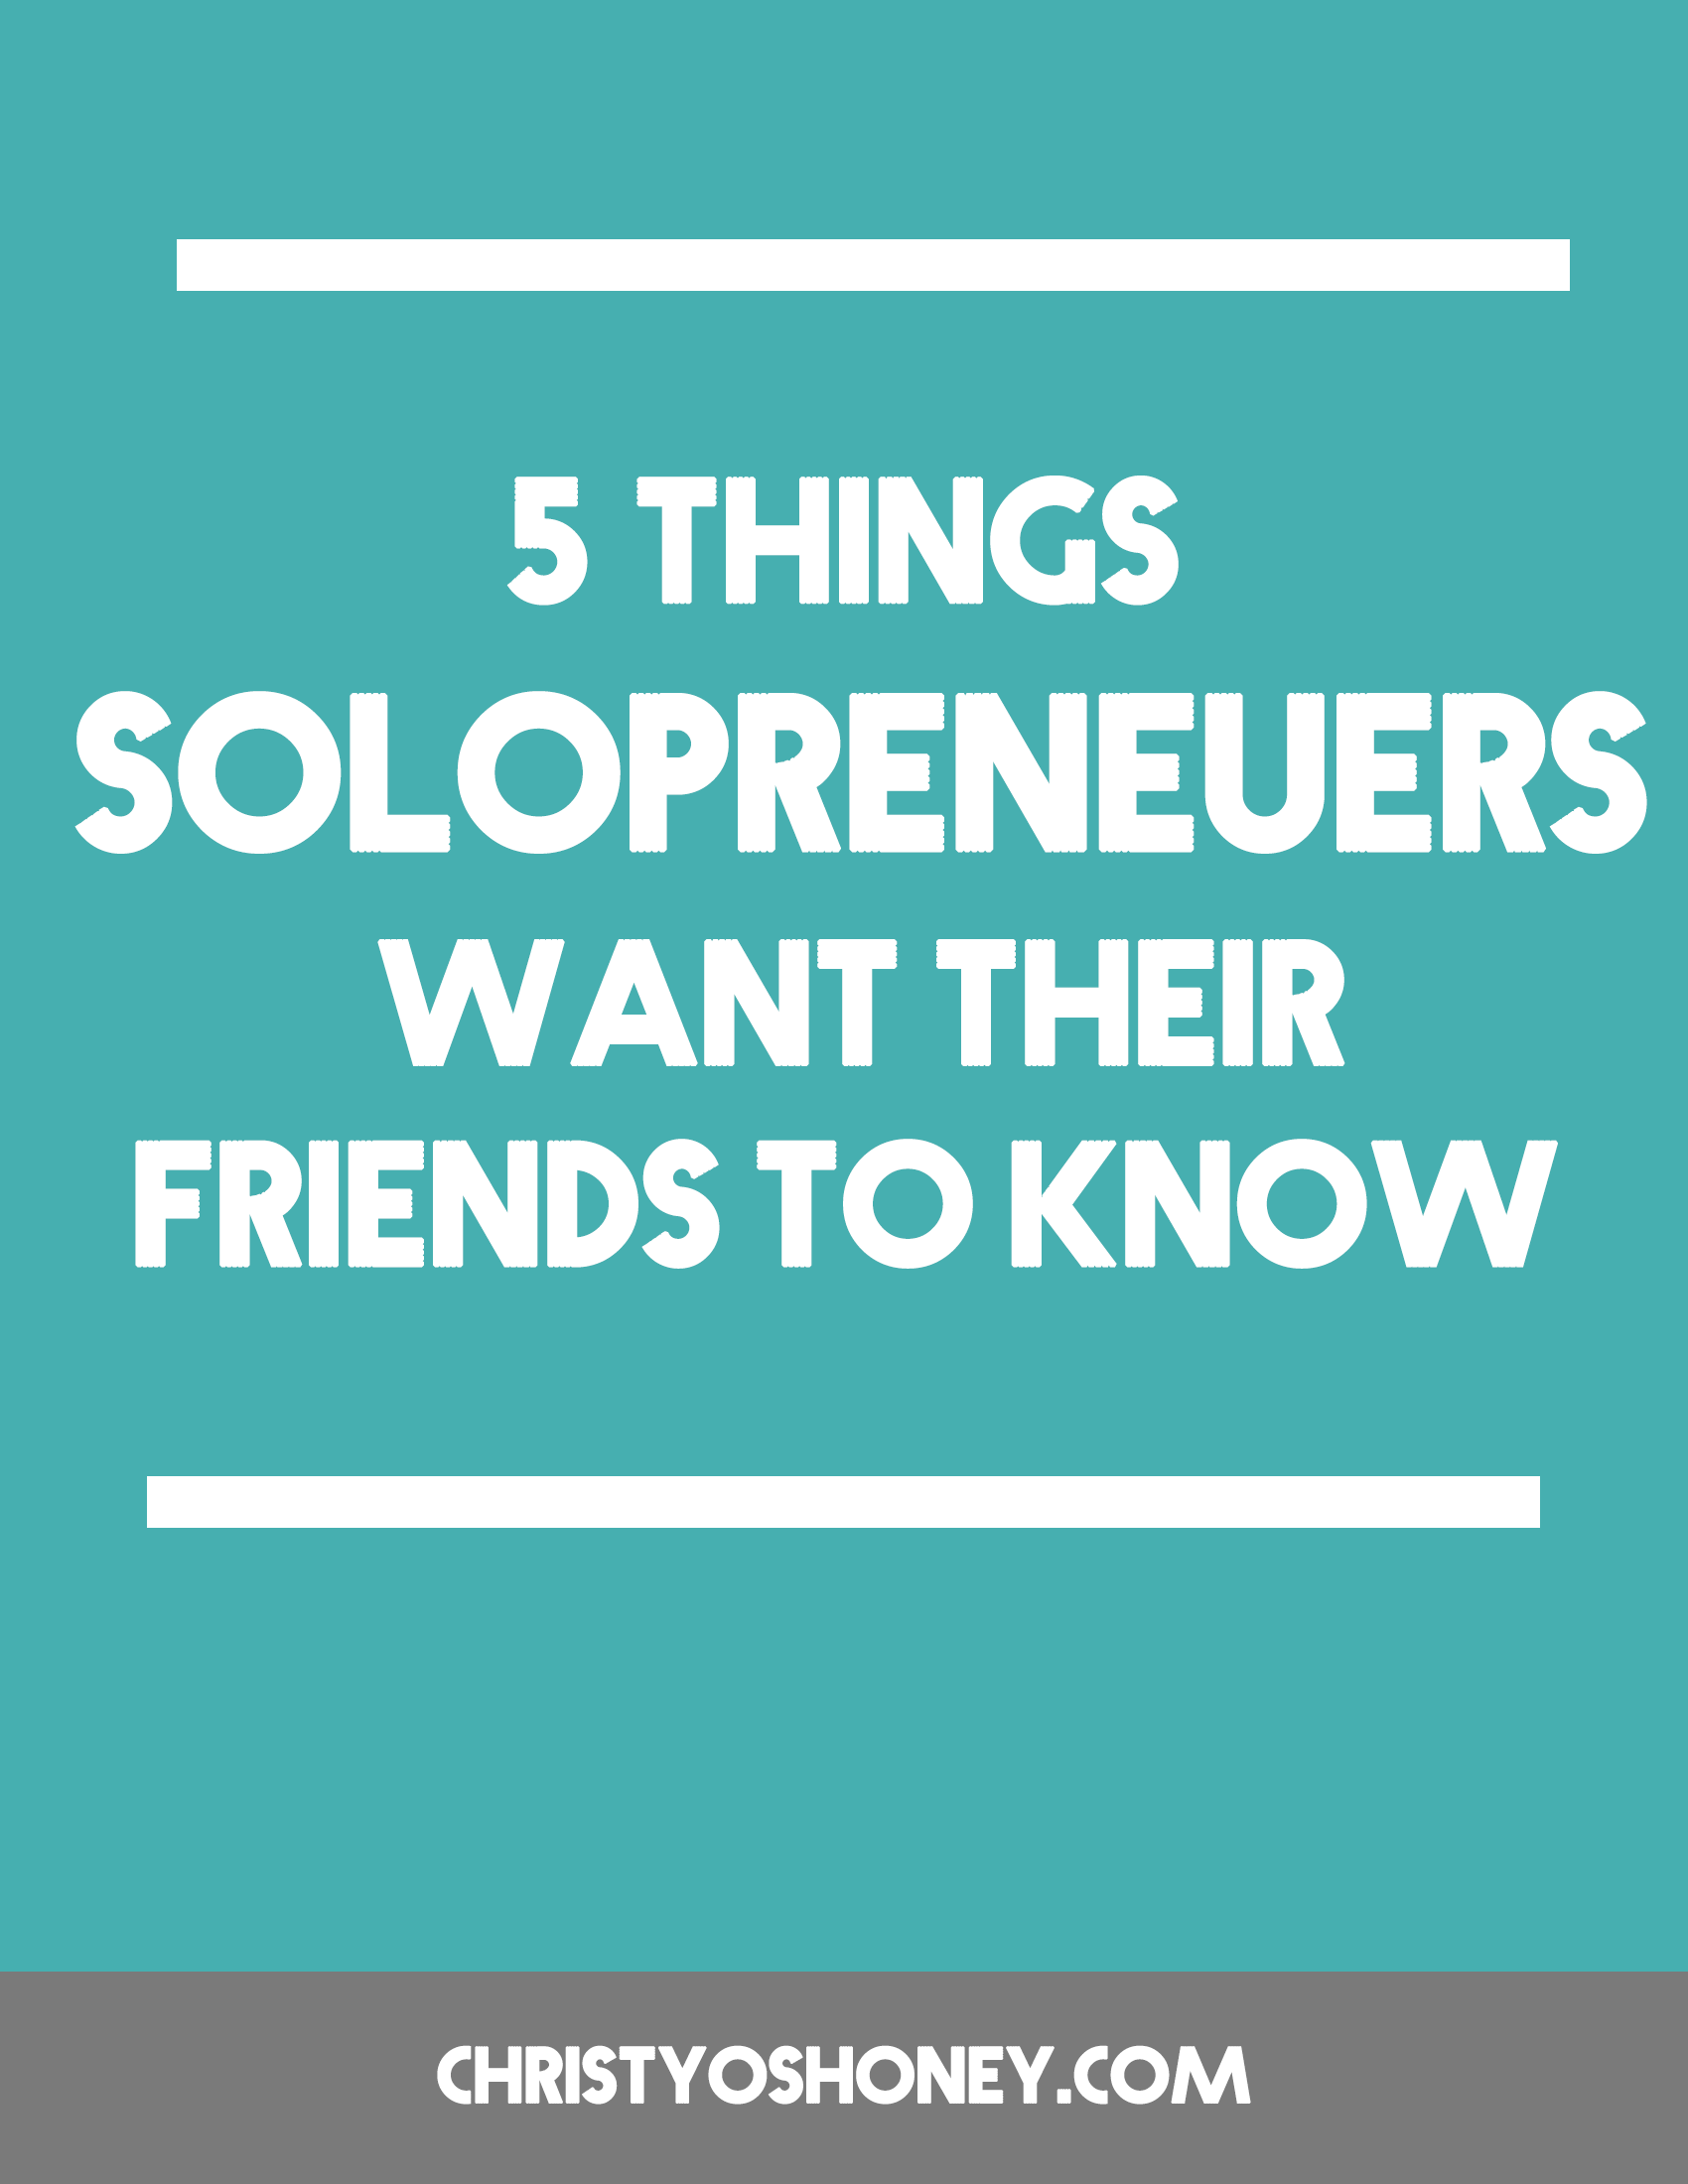 While being a  solopreneur comes with so much freedom, there are definitely some tricky parts of the job. This post lays out some ways to support the solopreneur in your life. And if you happen to be of the solobiz persuasion, this post will definitely resonate with you. Click through to read more!